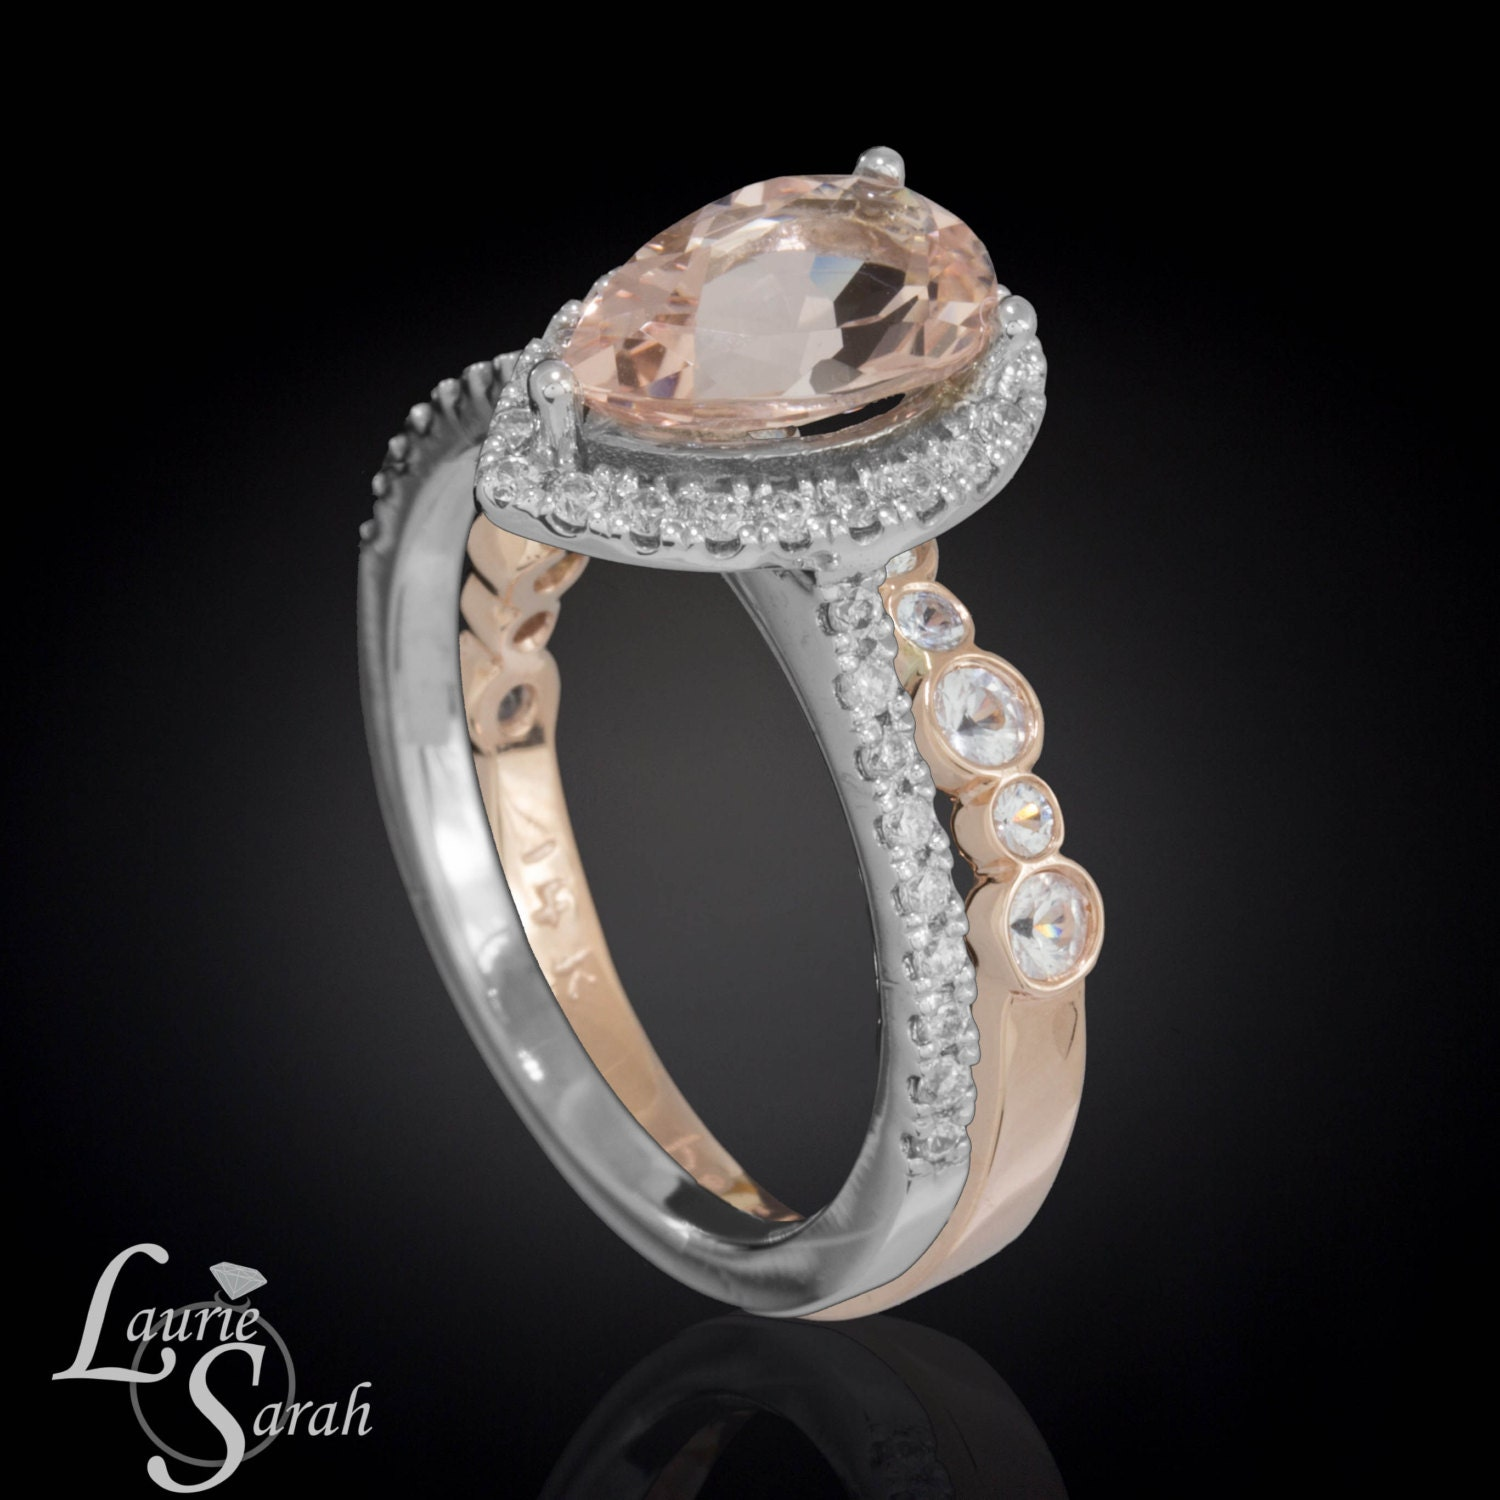 pear cut morganite ring morganite engagement ring bezel set. Black Bedroom Furniture Sets. Home Design Ideas